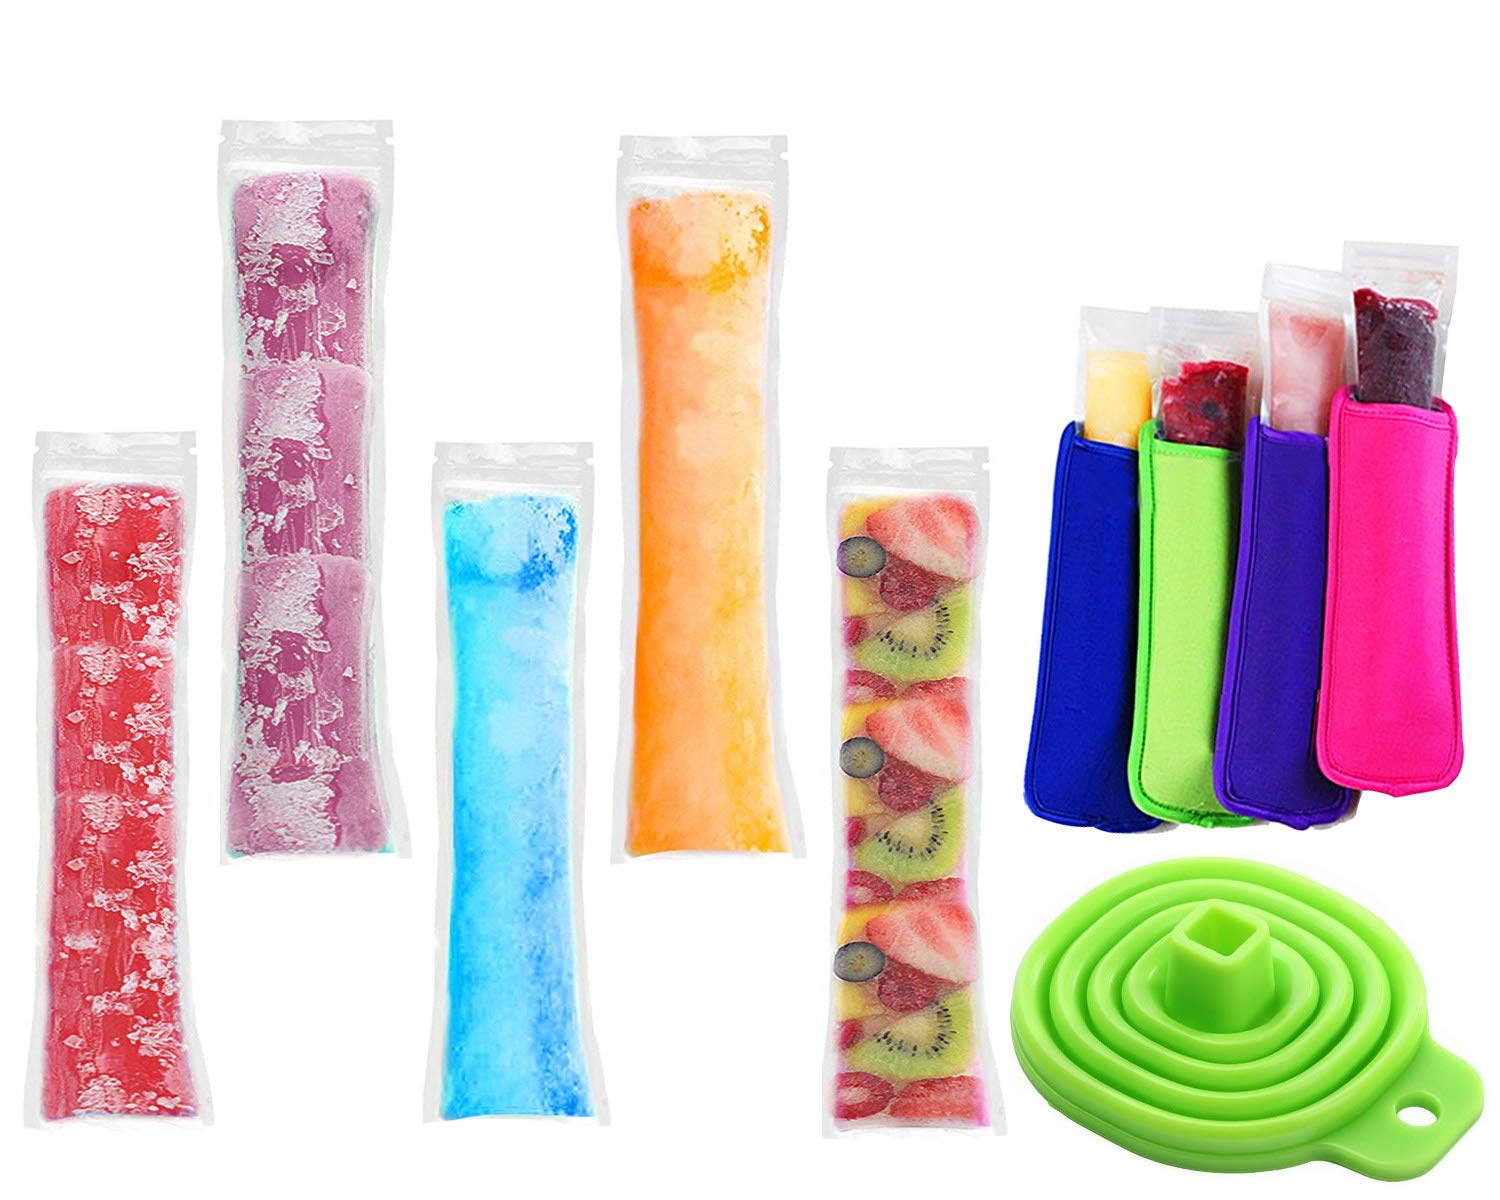 100 Pack Ice Popsicle Molds Bags - Zip-Top Disposable DIY Ice Pop Mold Bags - Summer Ice Pop Pouch with 4 Ice Pop Sleeves & 1 Silicone Funnel for Yogurt, Ice Candy, Otter Pops, Gogurt, or Freeze Pops NM